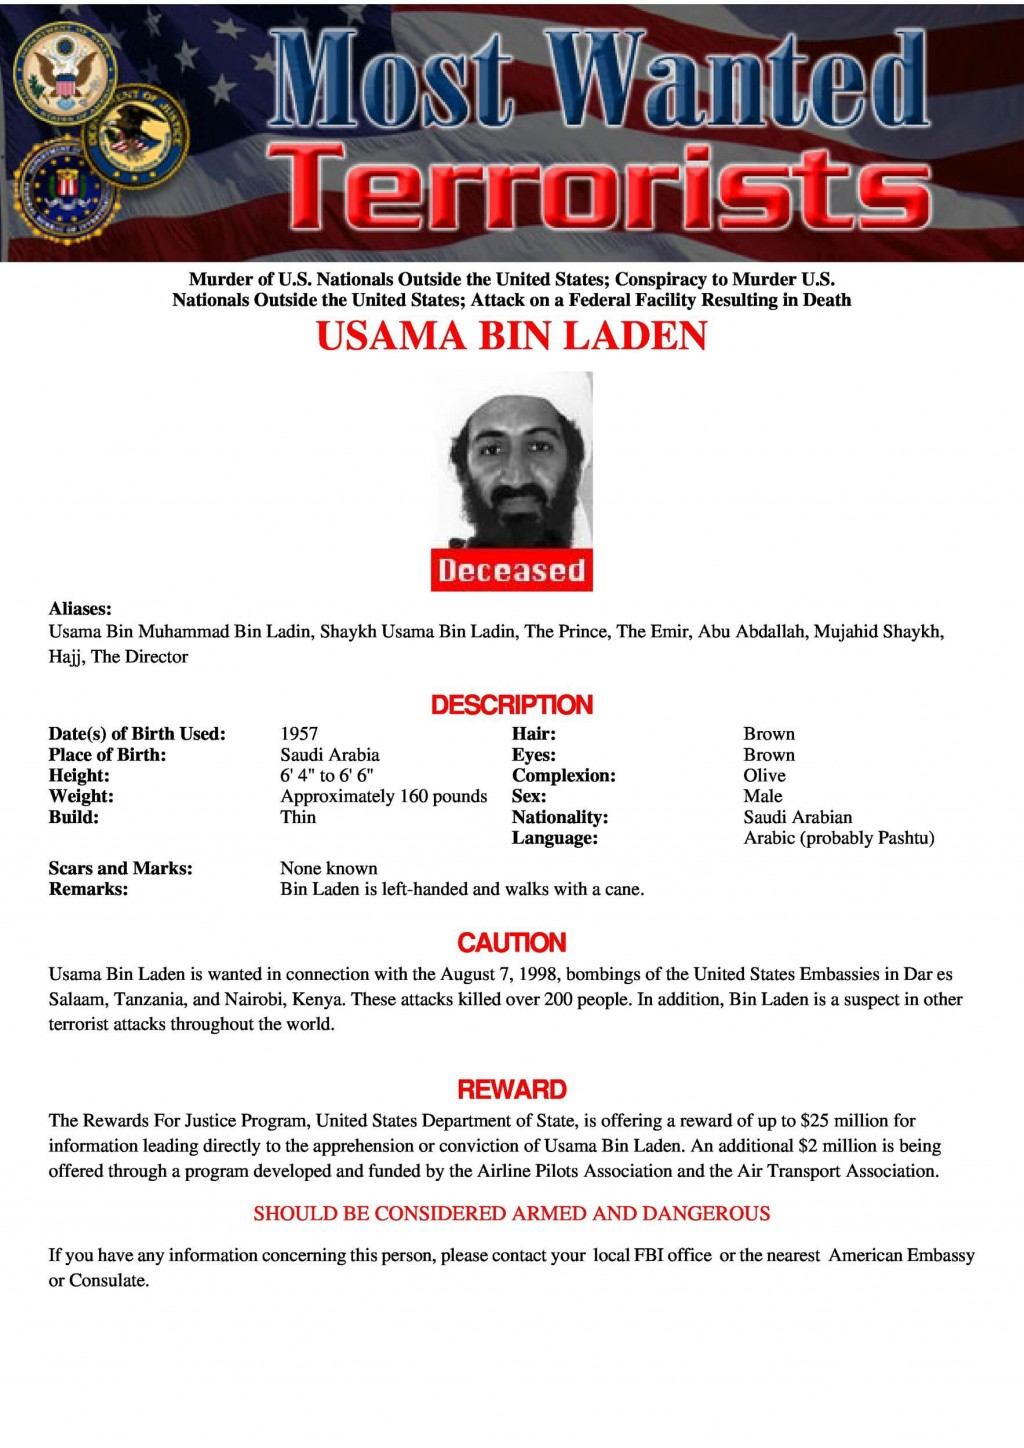 003 Incredible Wanted Poster Template Pdf High Def  Free CharacterLarge